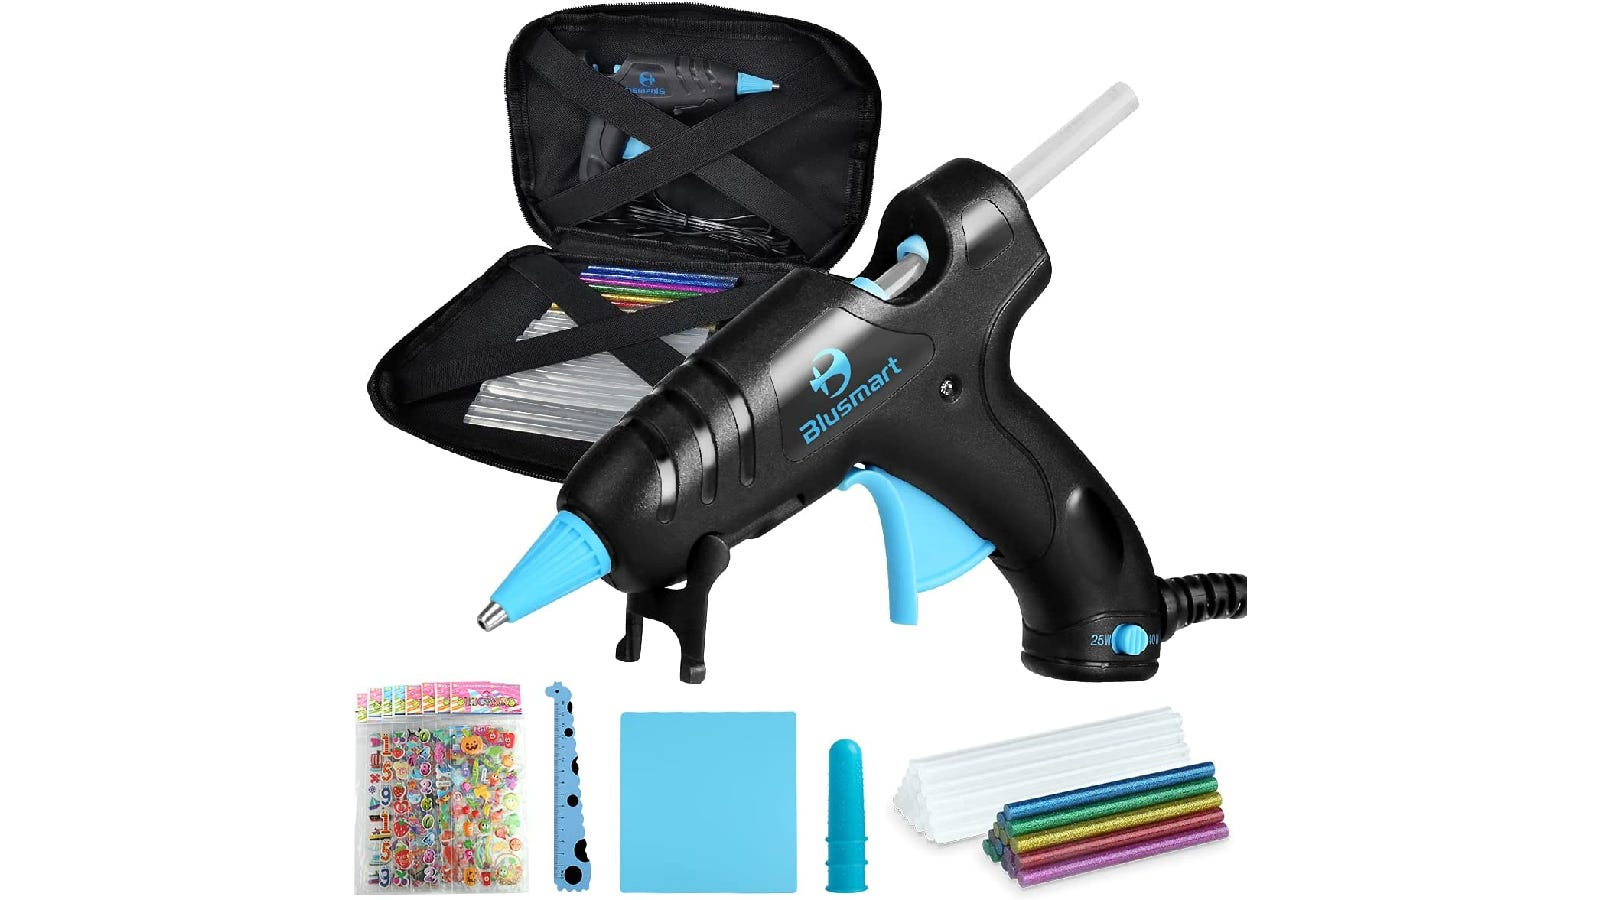 black glue gun with a black carrying case, a stack of transparent glue sticks, a stack of colorful glue sticks, and various accessories